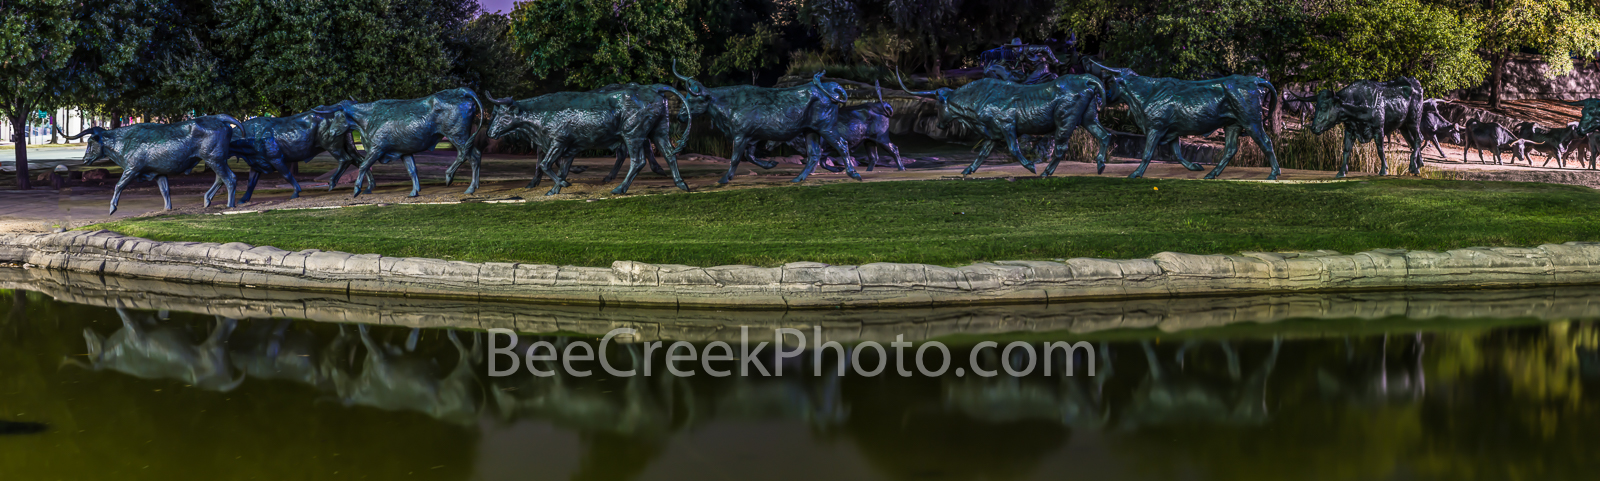 Dallas, Pioneer Plaza Park, downtown dallas, reflections, cattle drive, pioneer park, pioneer plaza, water, longhorns, longhorn, art scuplture,